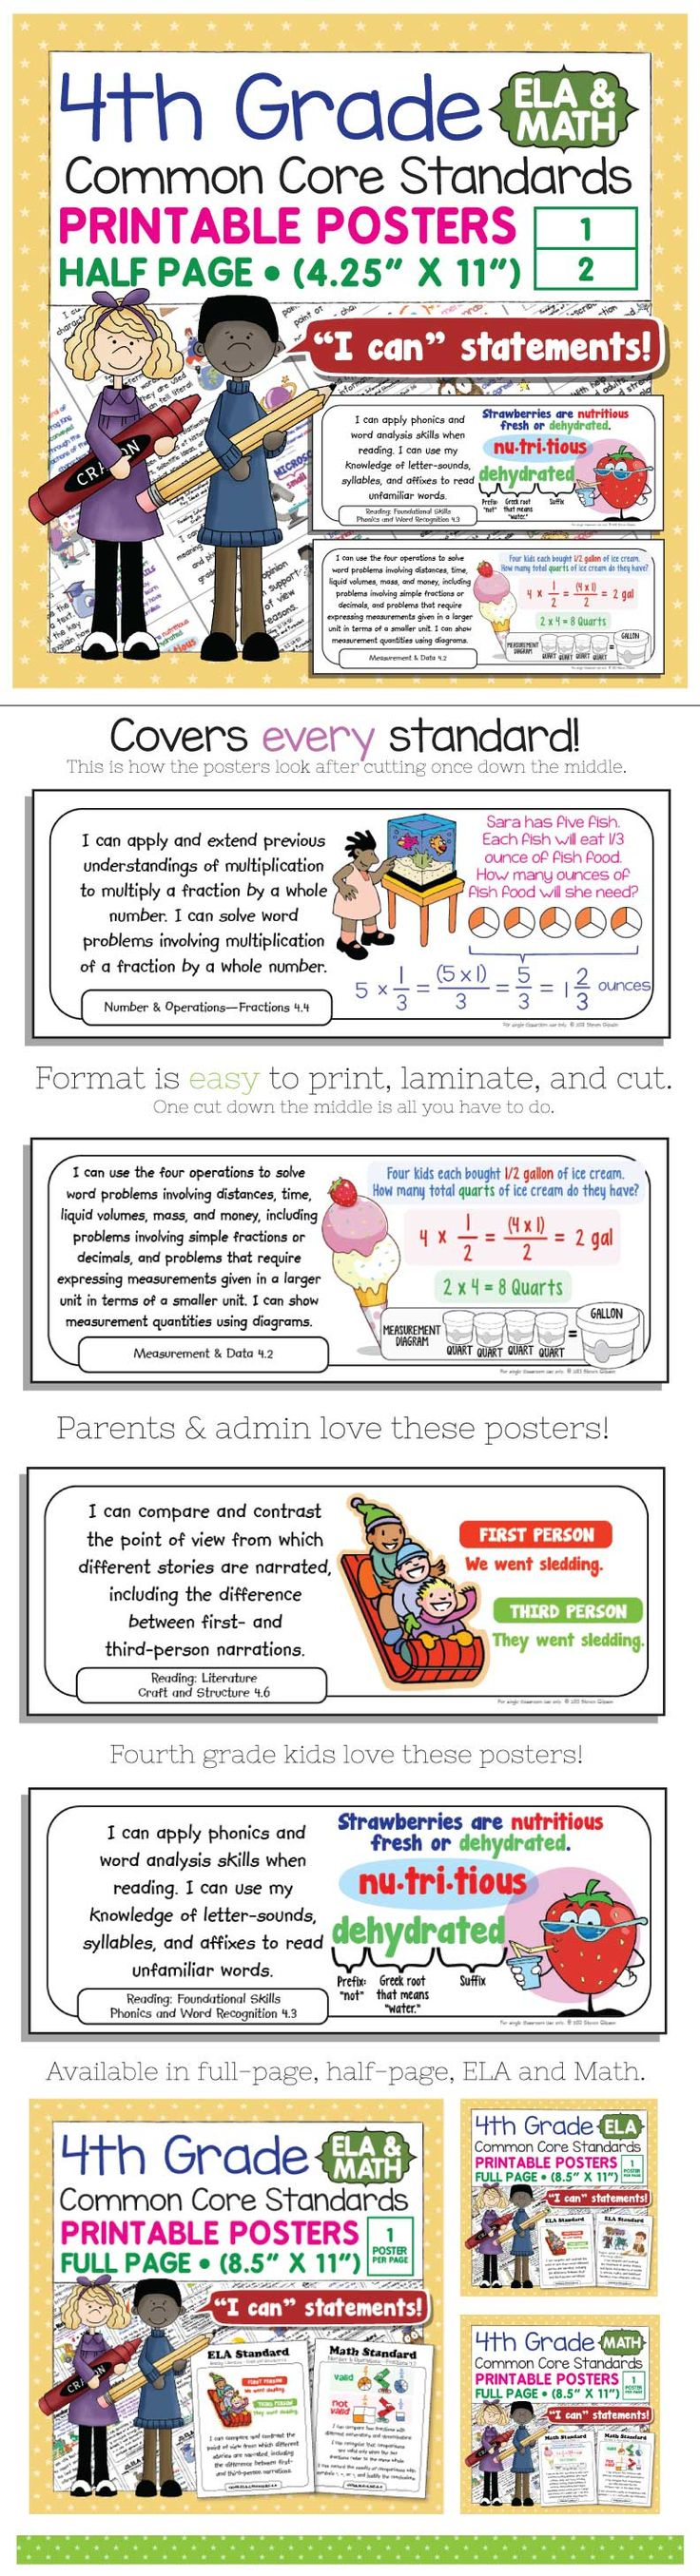 "Bring the Common Core Standards to life with these easy-to-use ""I can"" posters for fourth grade math. Just print, laminate, cut and hang! This bundle includes posters for every math Standard. Each standard is illustrated to aid comprehension. The illustrations are cute but not babyish - just right for the age range of students in fourth grade classrooms."